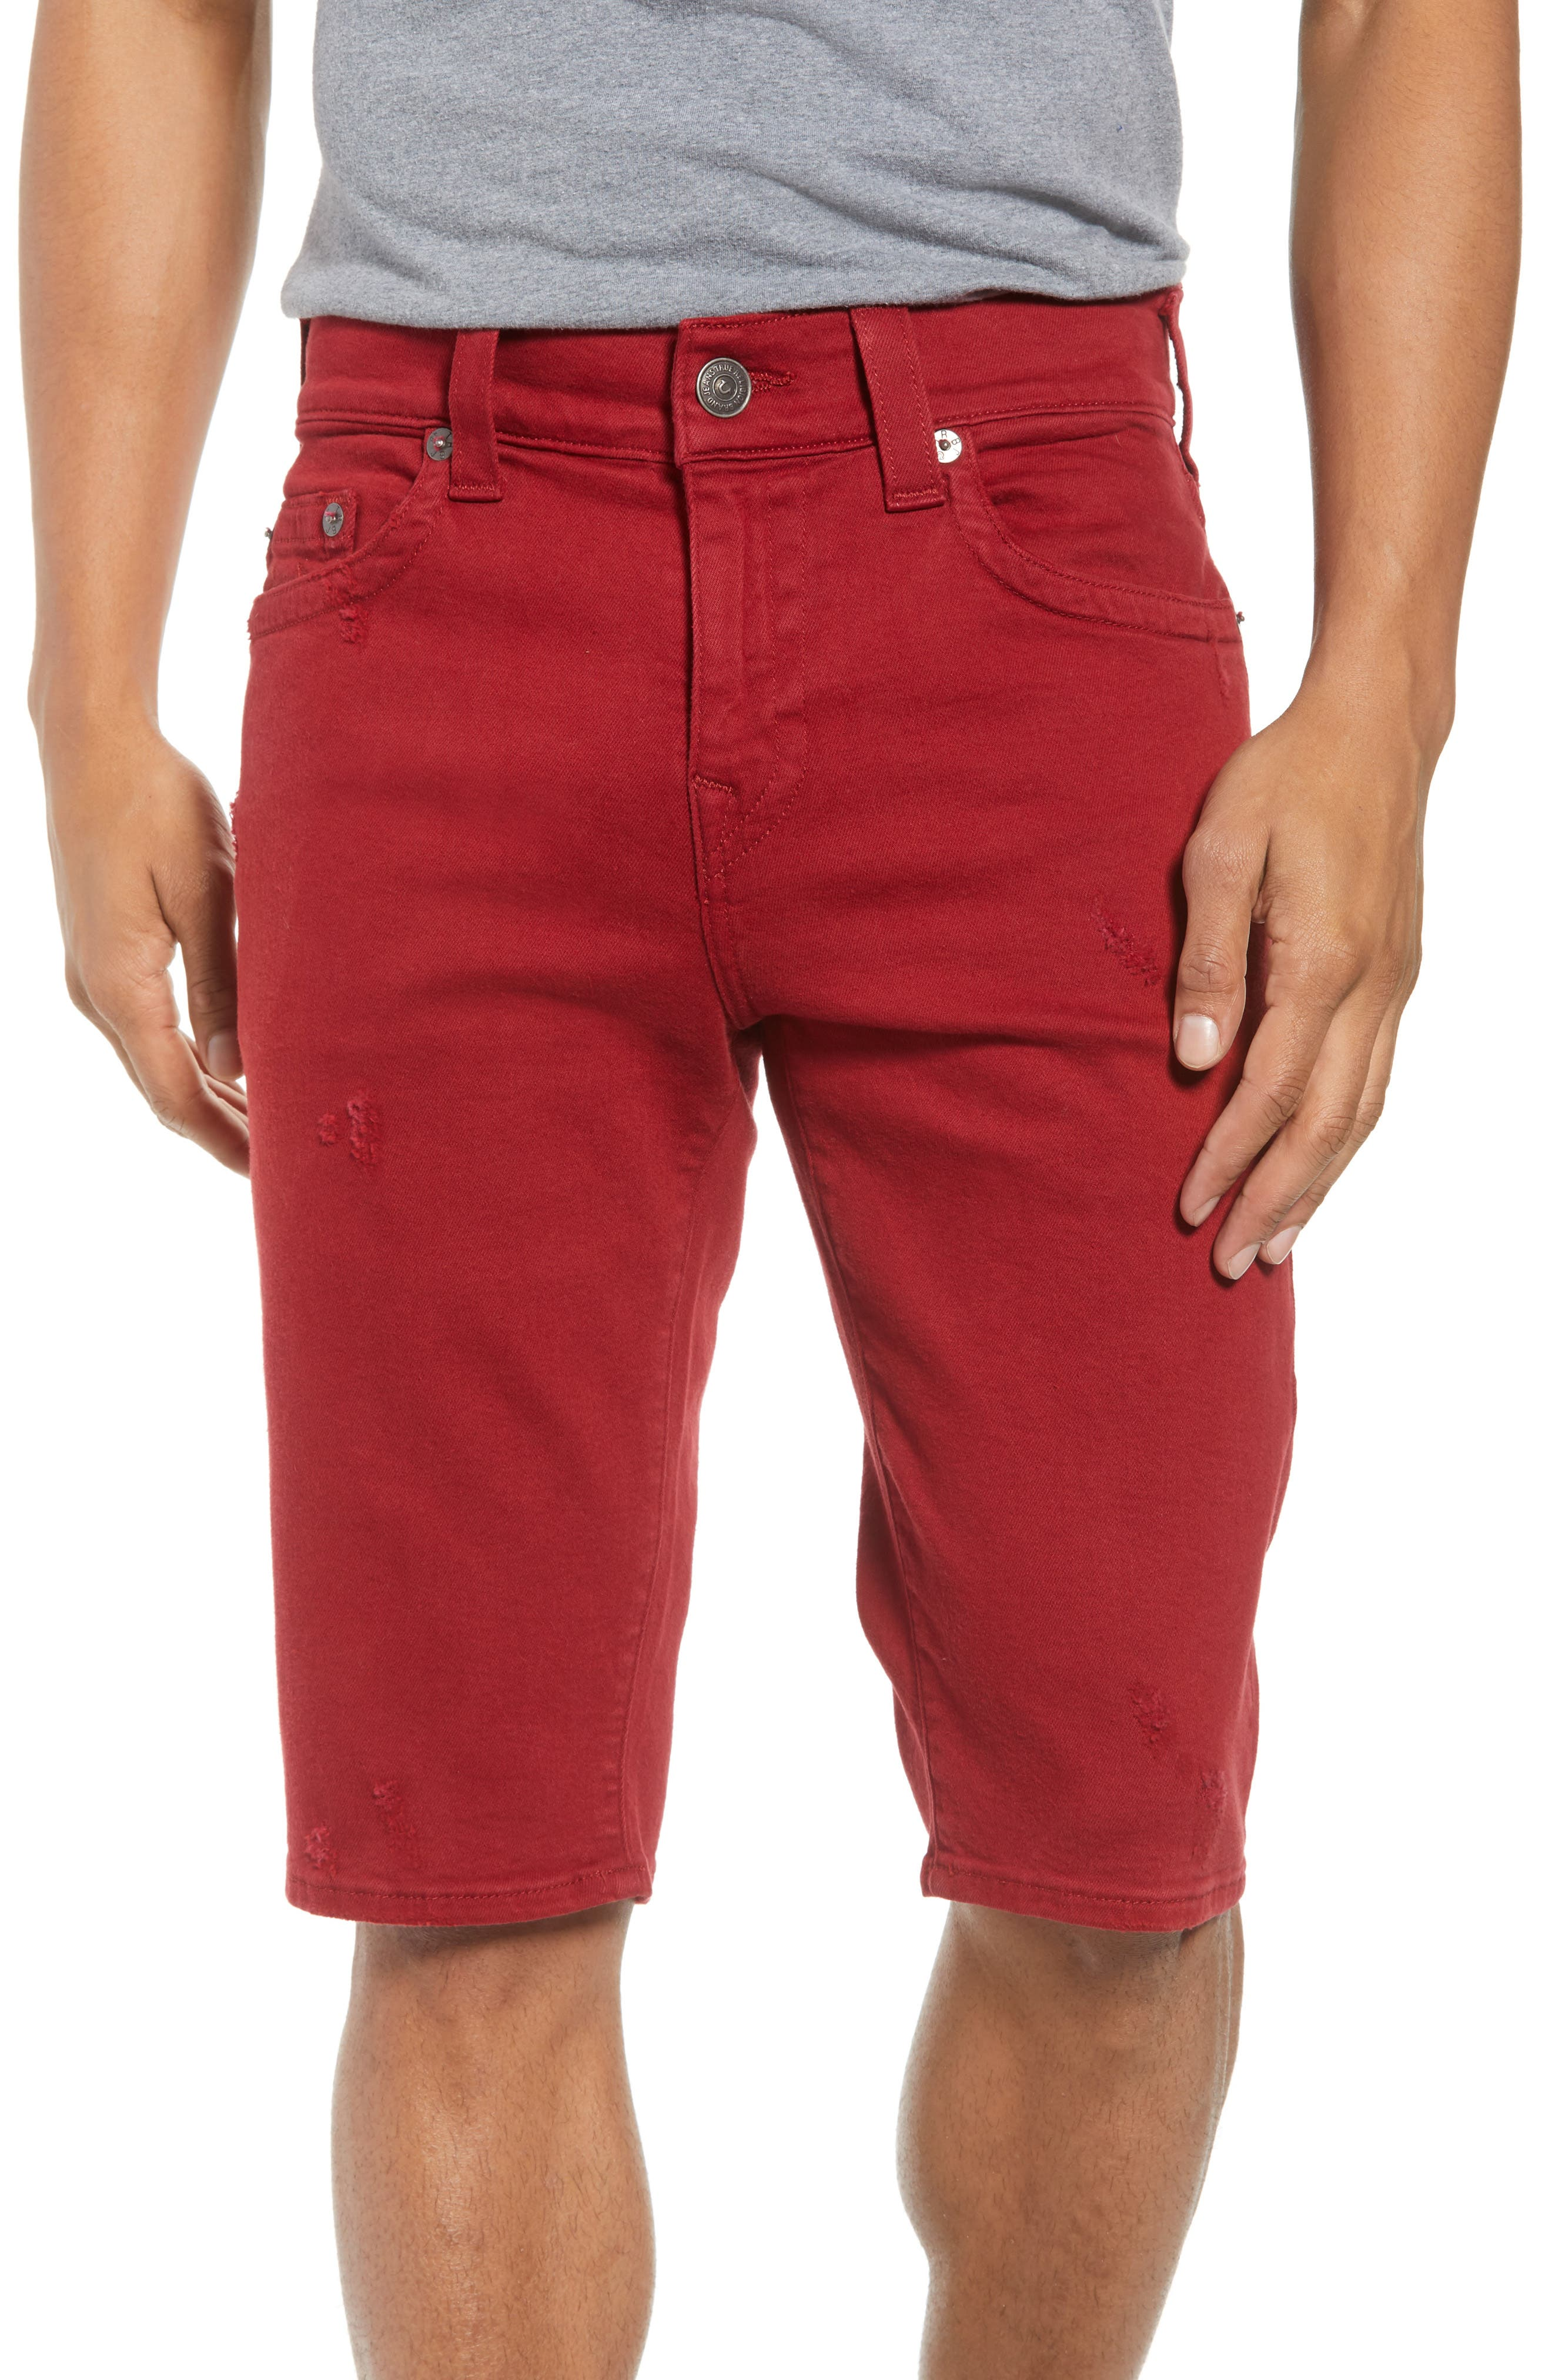 Ricky Relaxed Fit Shorts,                             Main thumbnail 1, color,                             FIRECRACKER RED